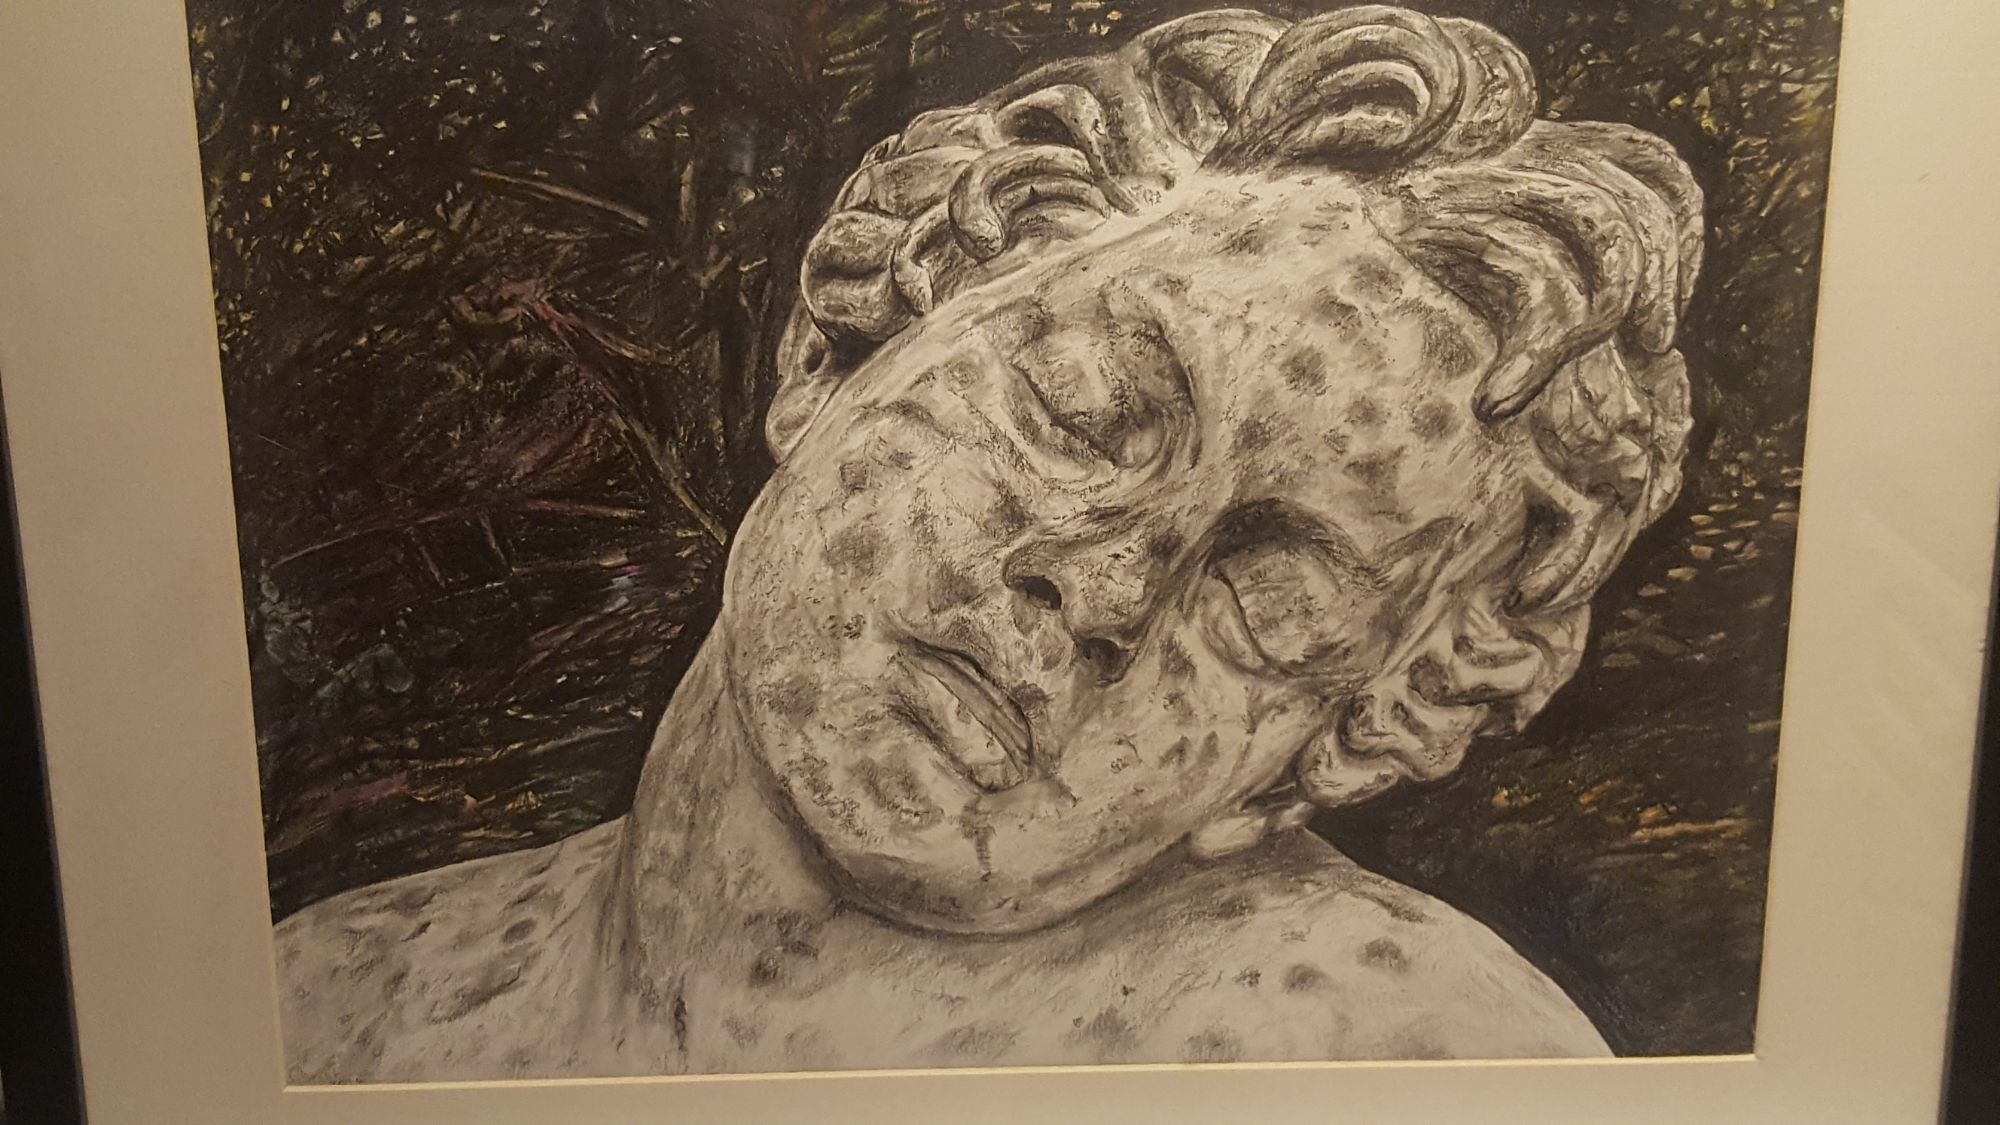 Sleeping Faun, pencil and crayon, signed Christine 2014.